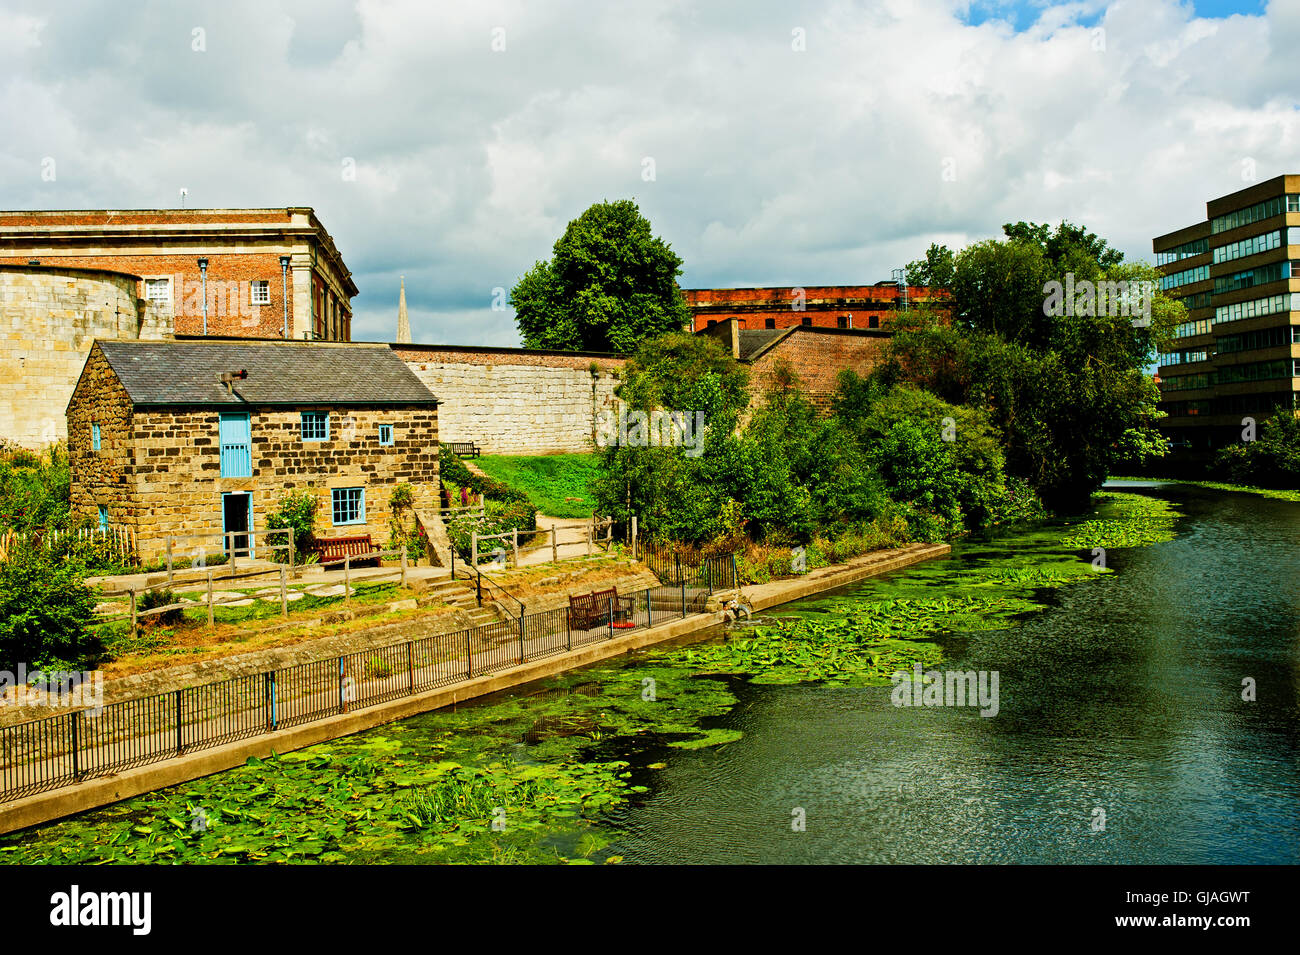 Grain Mill and River Foss, York - Stock Image